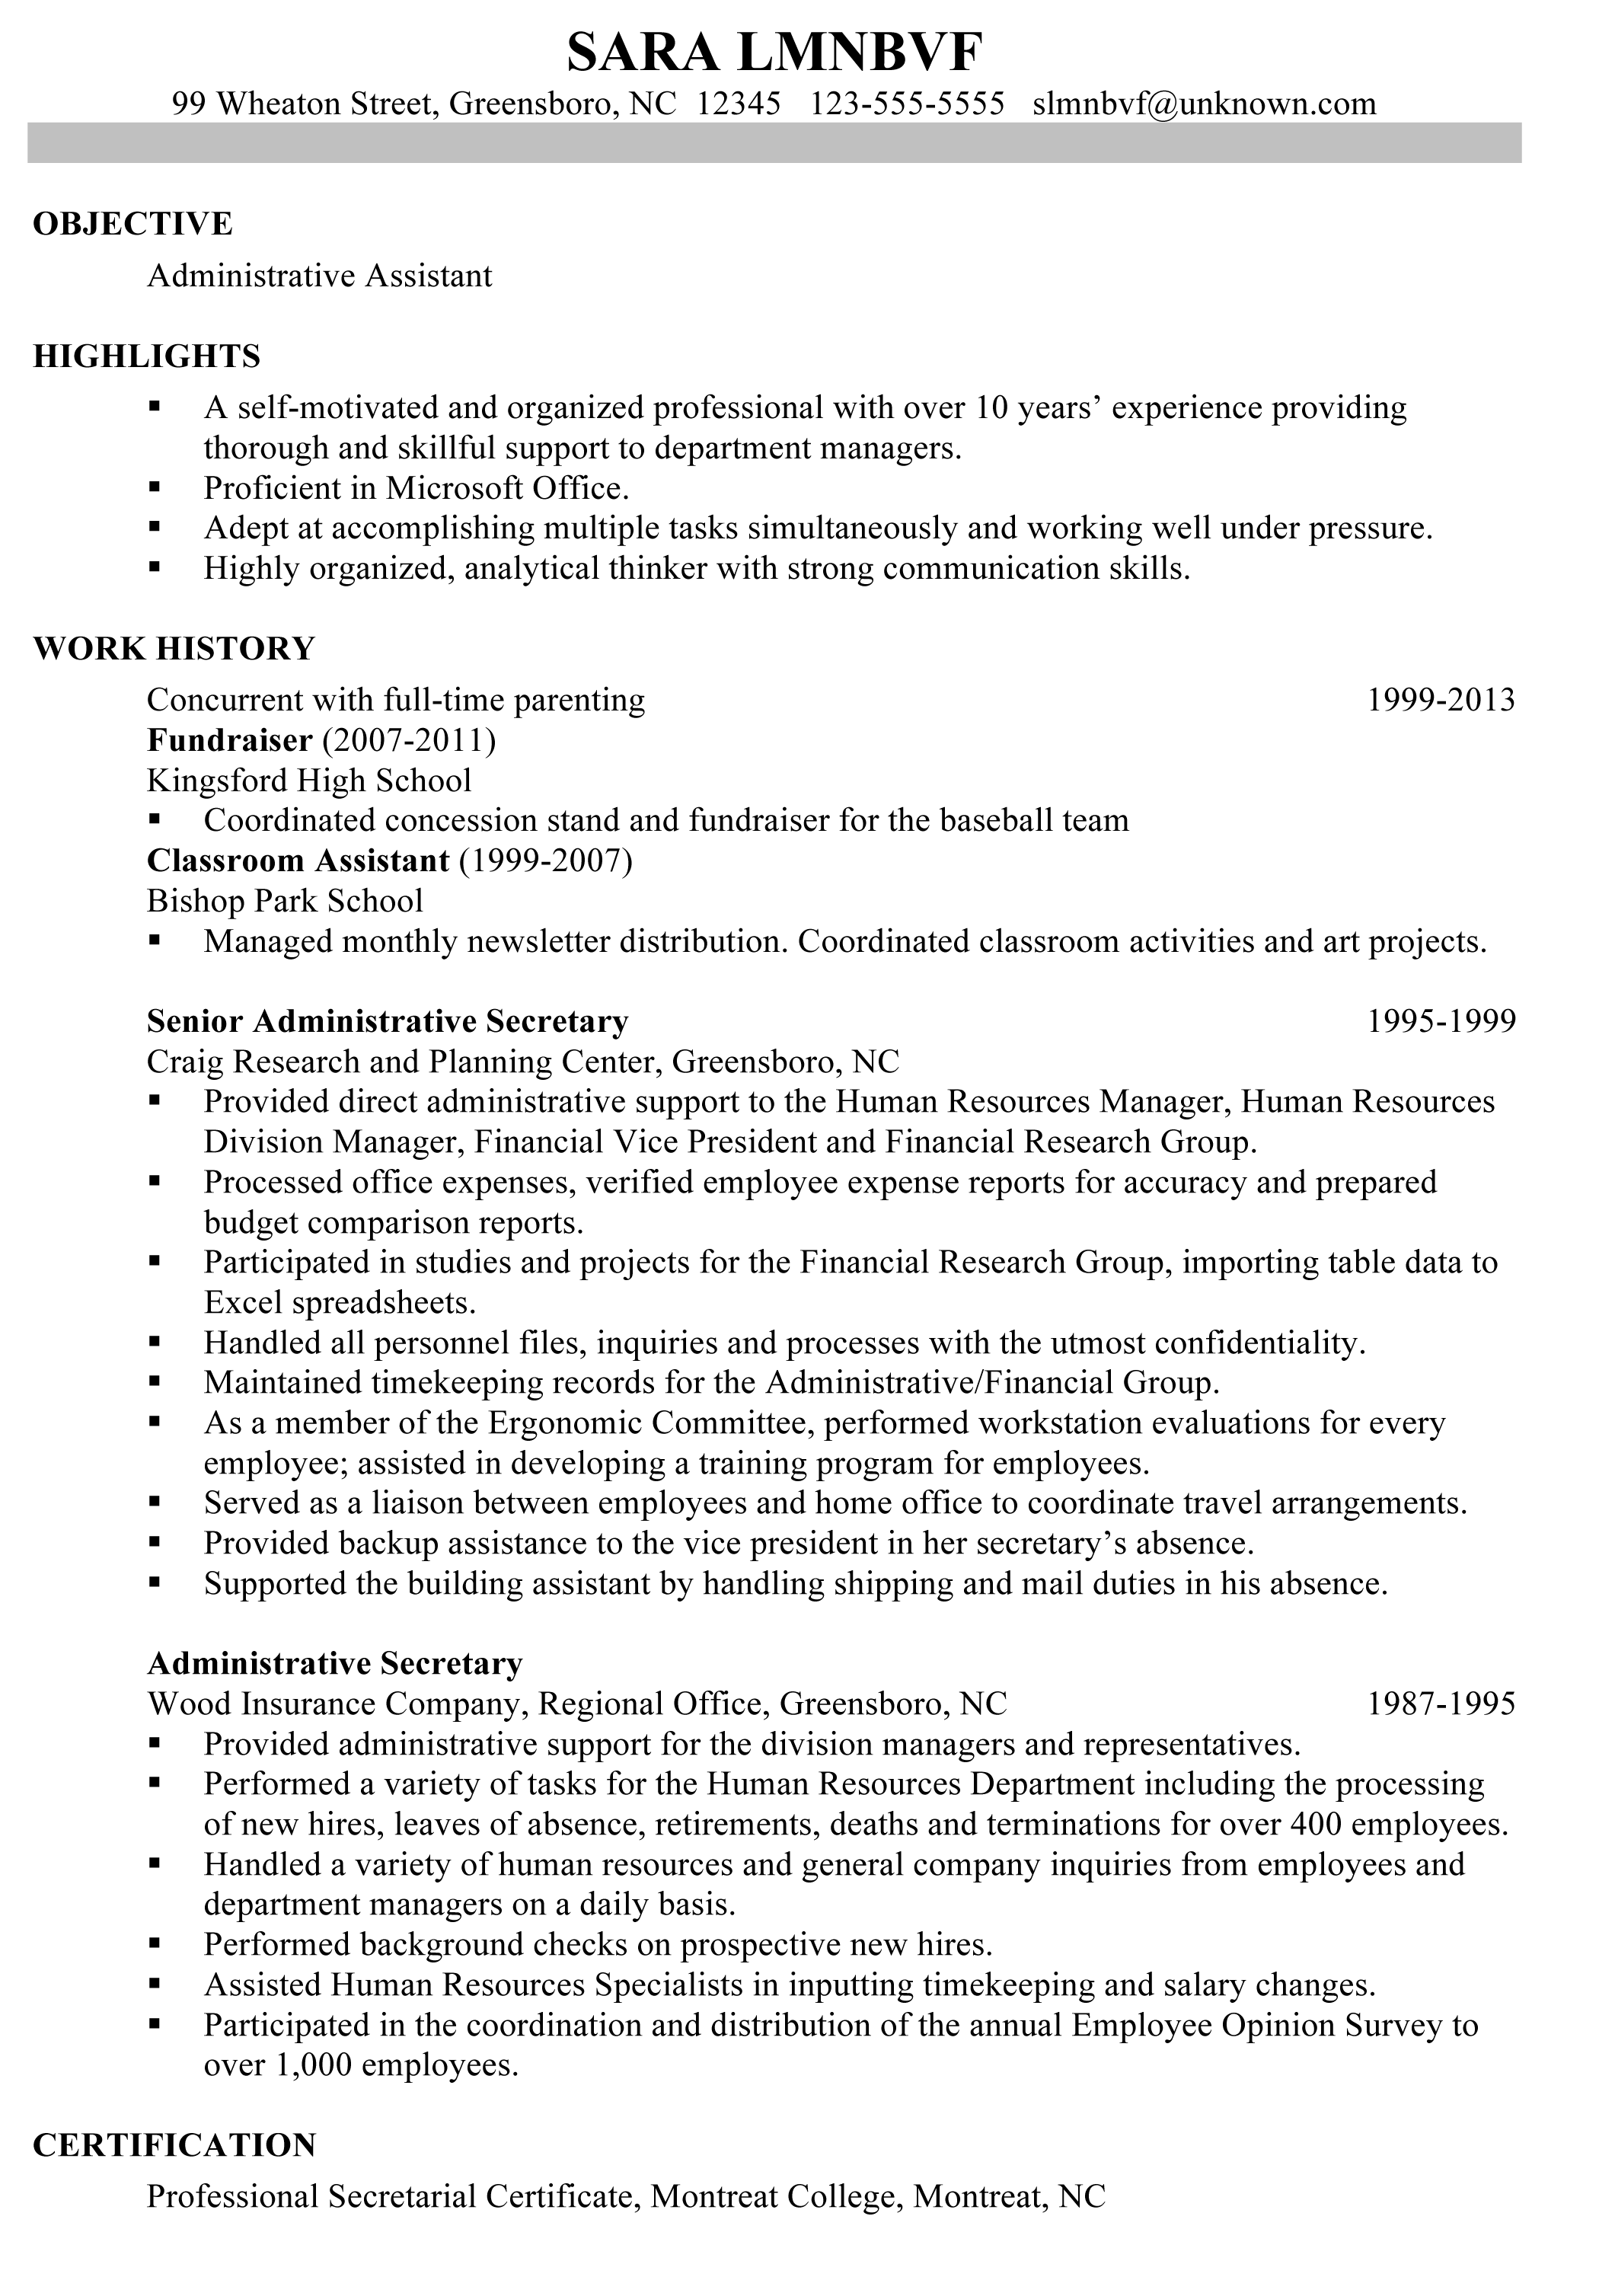 Work Resume Samples Chronological Resume Sample Administrative Assistant  Resume